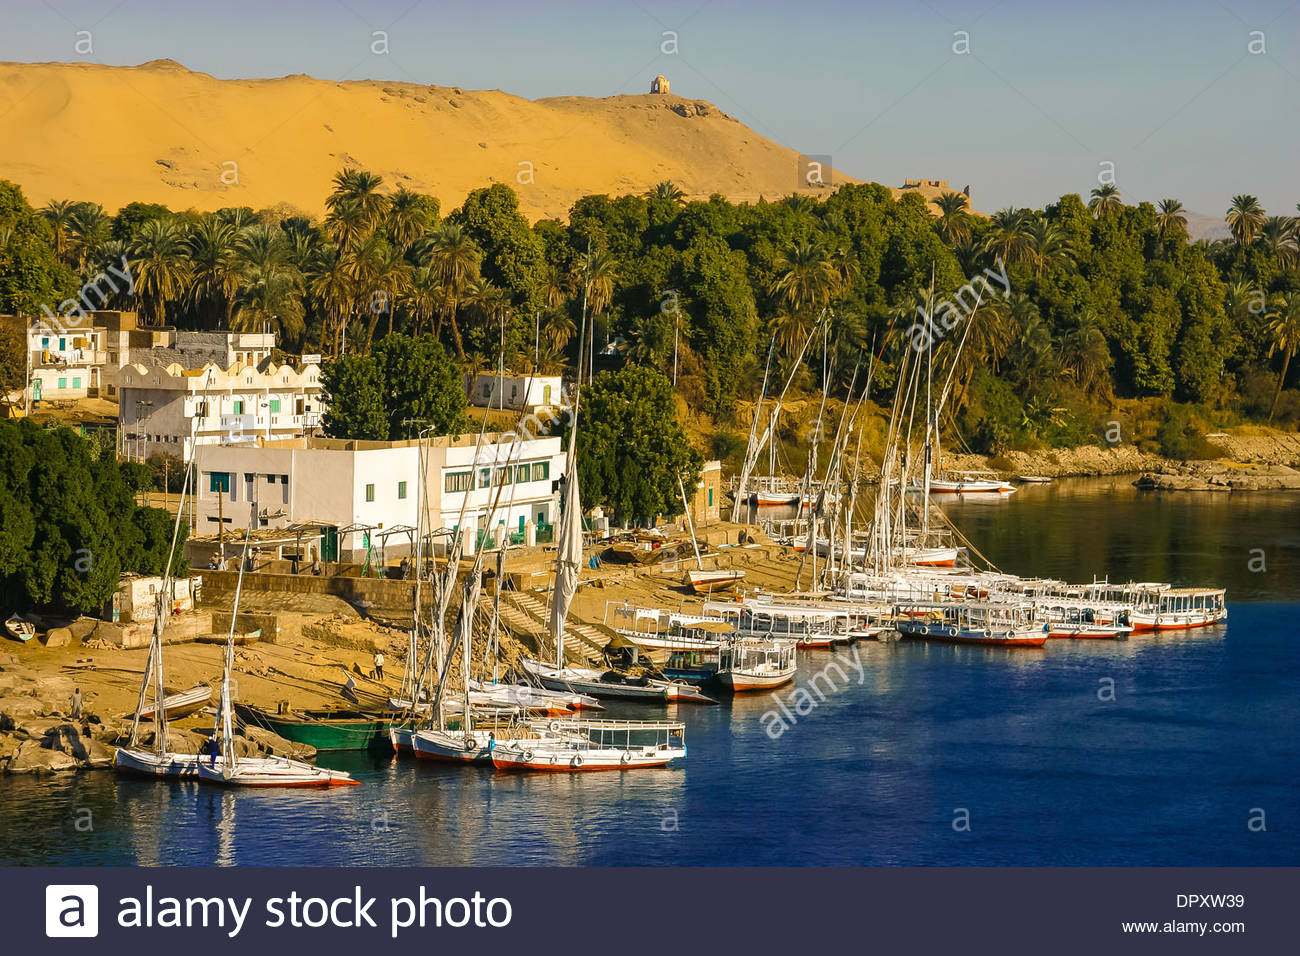 Elephantine Island Aswan, Feluccas on the Nile River near Elephantine Island in Aswan, Egypt ...